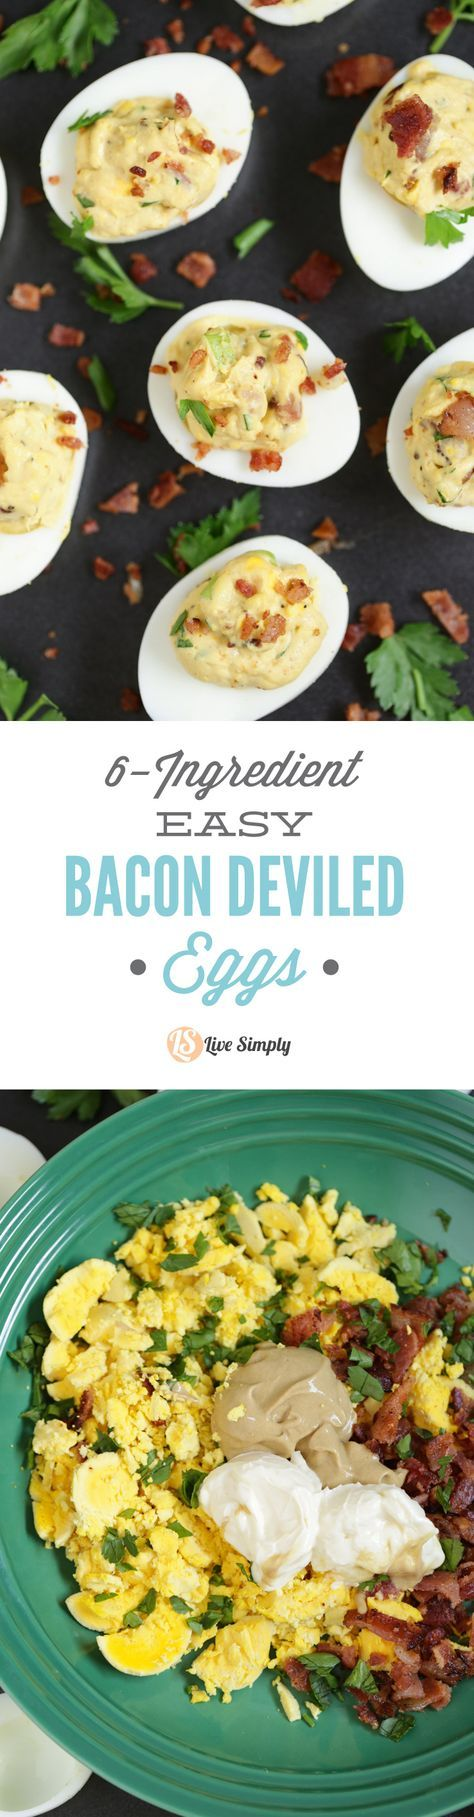 The BEST deviled egg recipe you'll ever make. Only 6 ingredients and 20 minutes are all you need to make these Easy Bacon Deviled Eggs. You may want to double the recipe...they'll go fast! http://livesimply.me/2015/03/25/6-ingredient-easy-bacon-deviled-eggs/